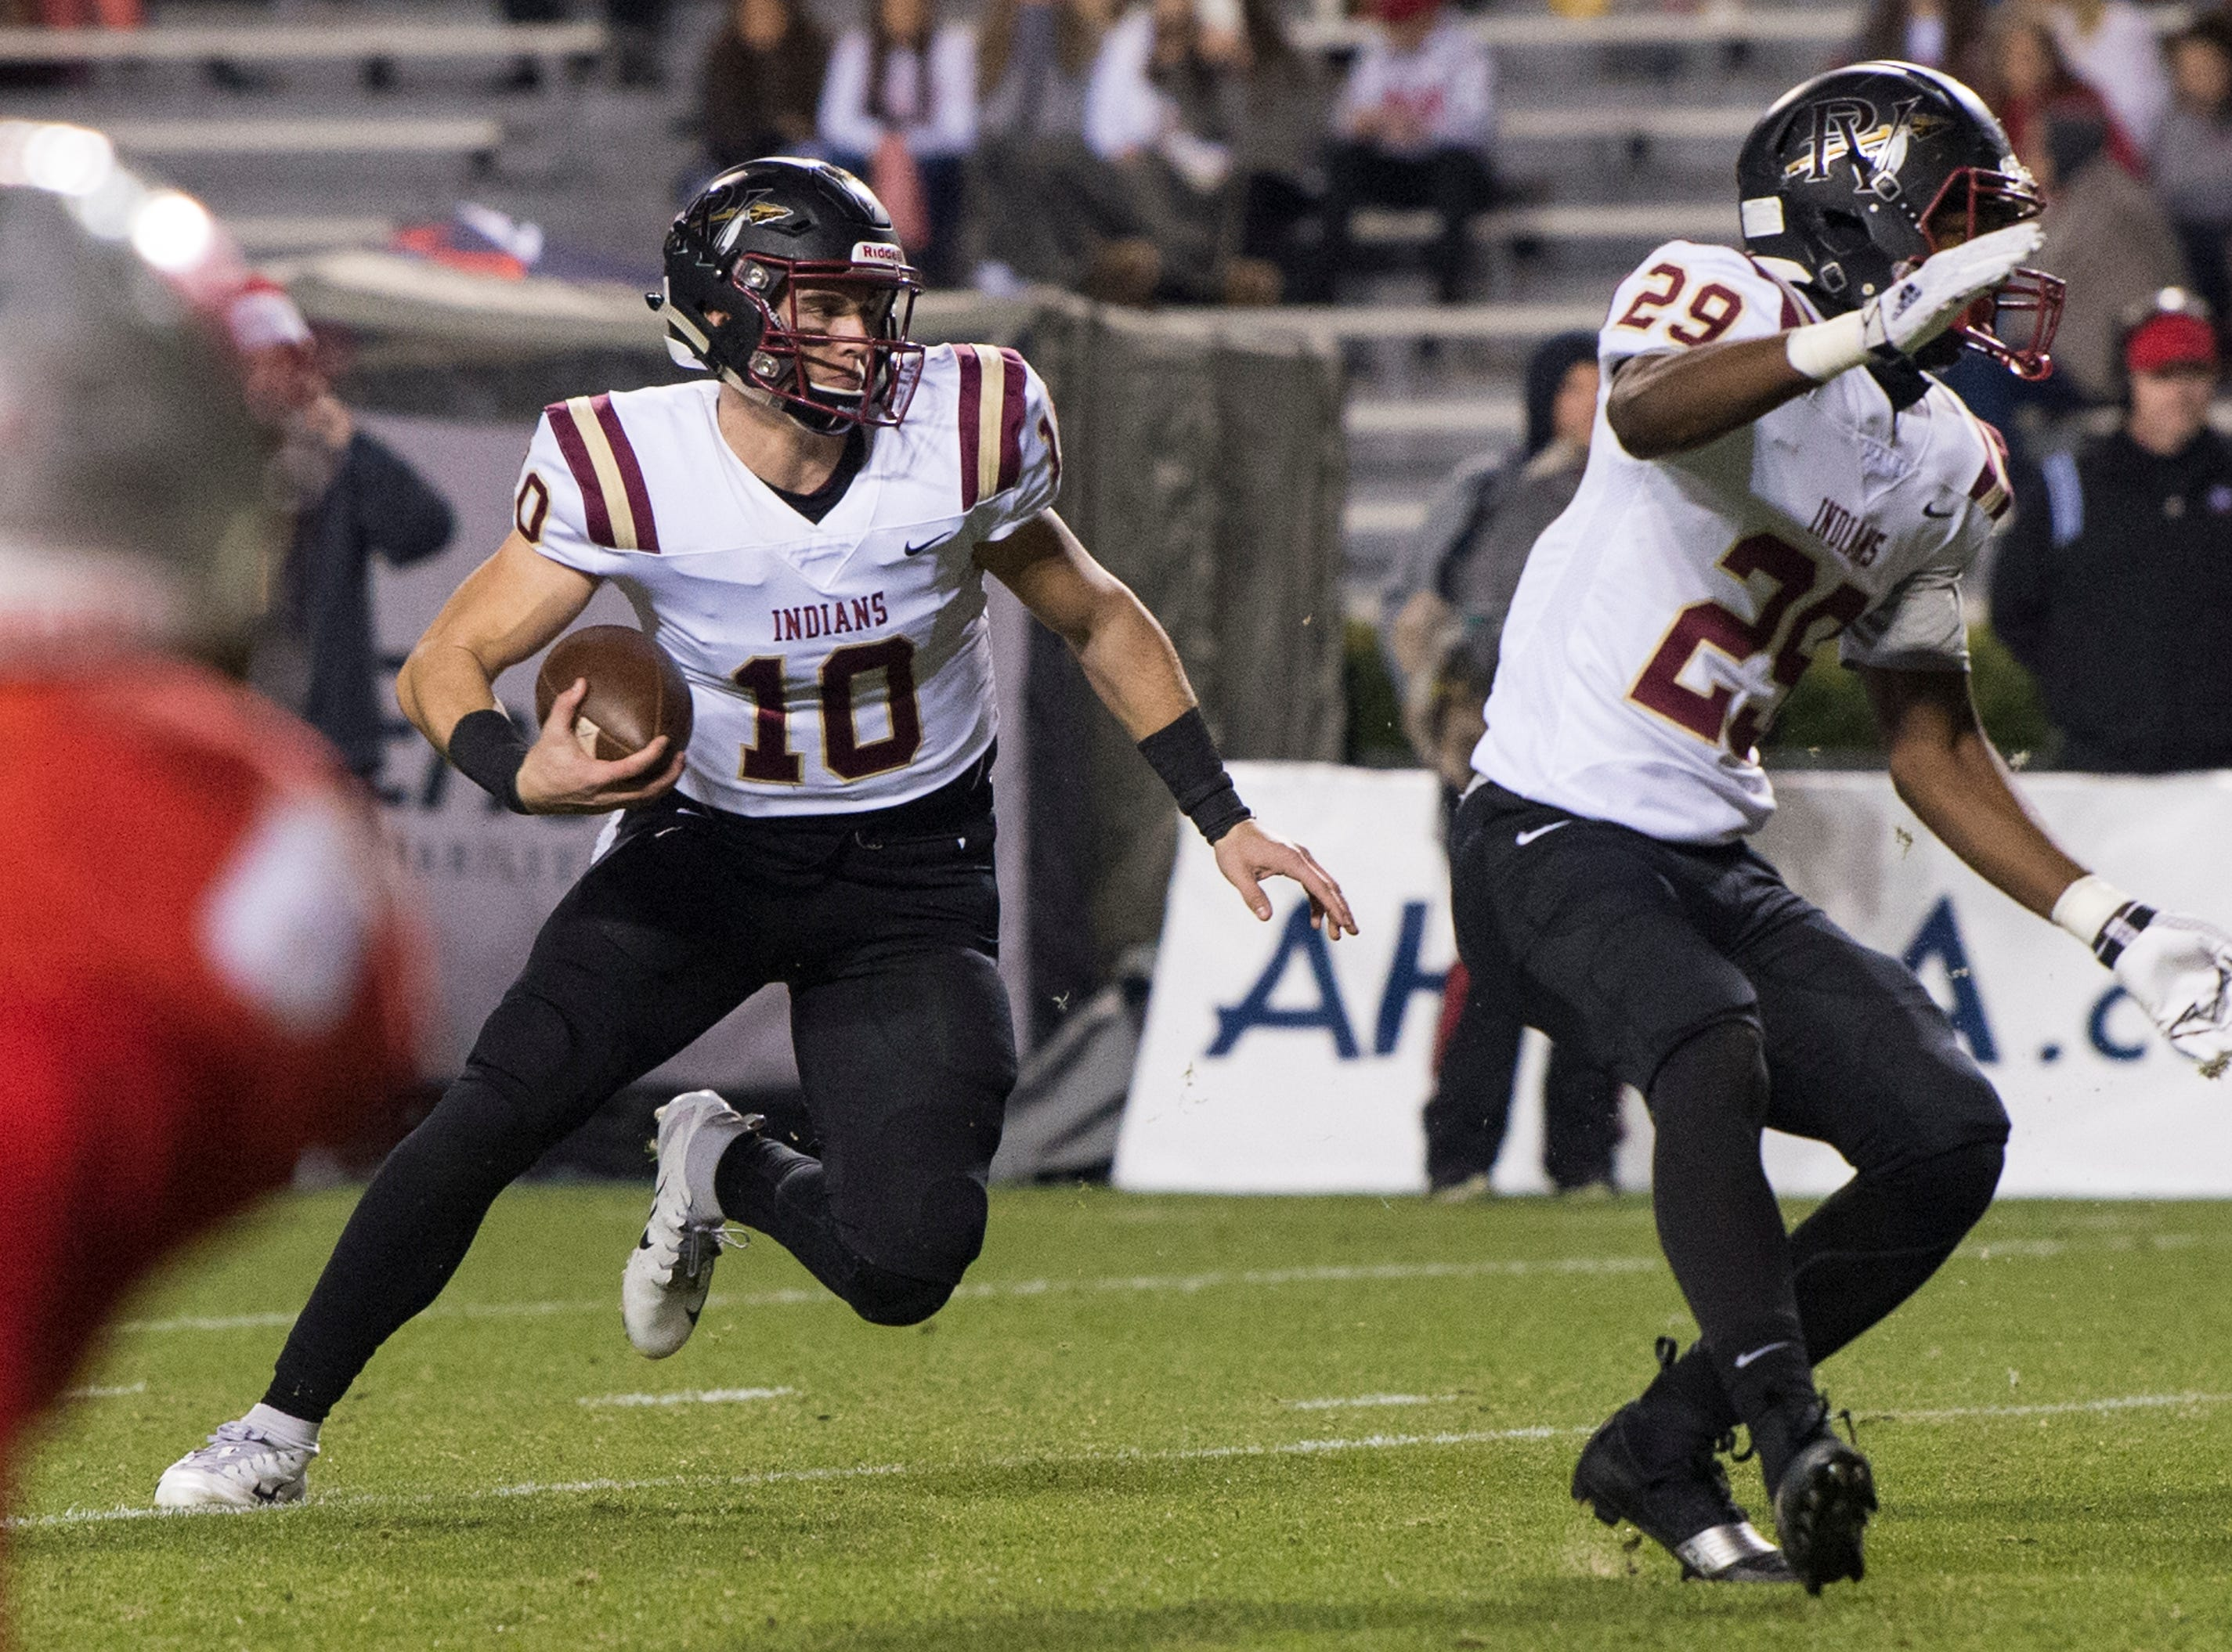 Pinson Valley's Bo Nix (10) runs the ball against Saraland during the Class 6A state championship at Jordan-Hare Stadium in Auburn, Ala., on Friday, Dec. 7, 2018. Pinson Valley leads Saraland 12-3 at halftime.